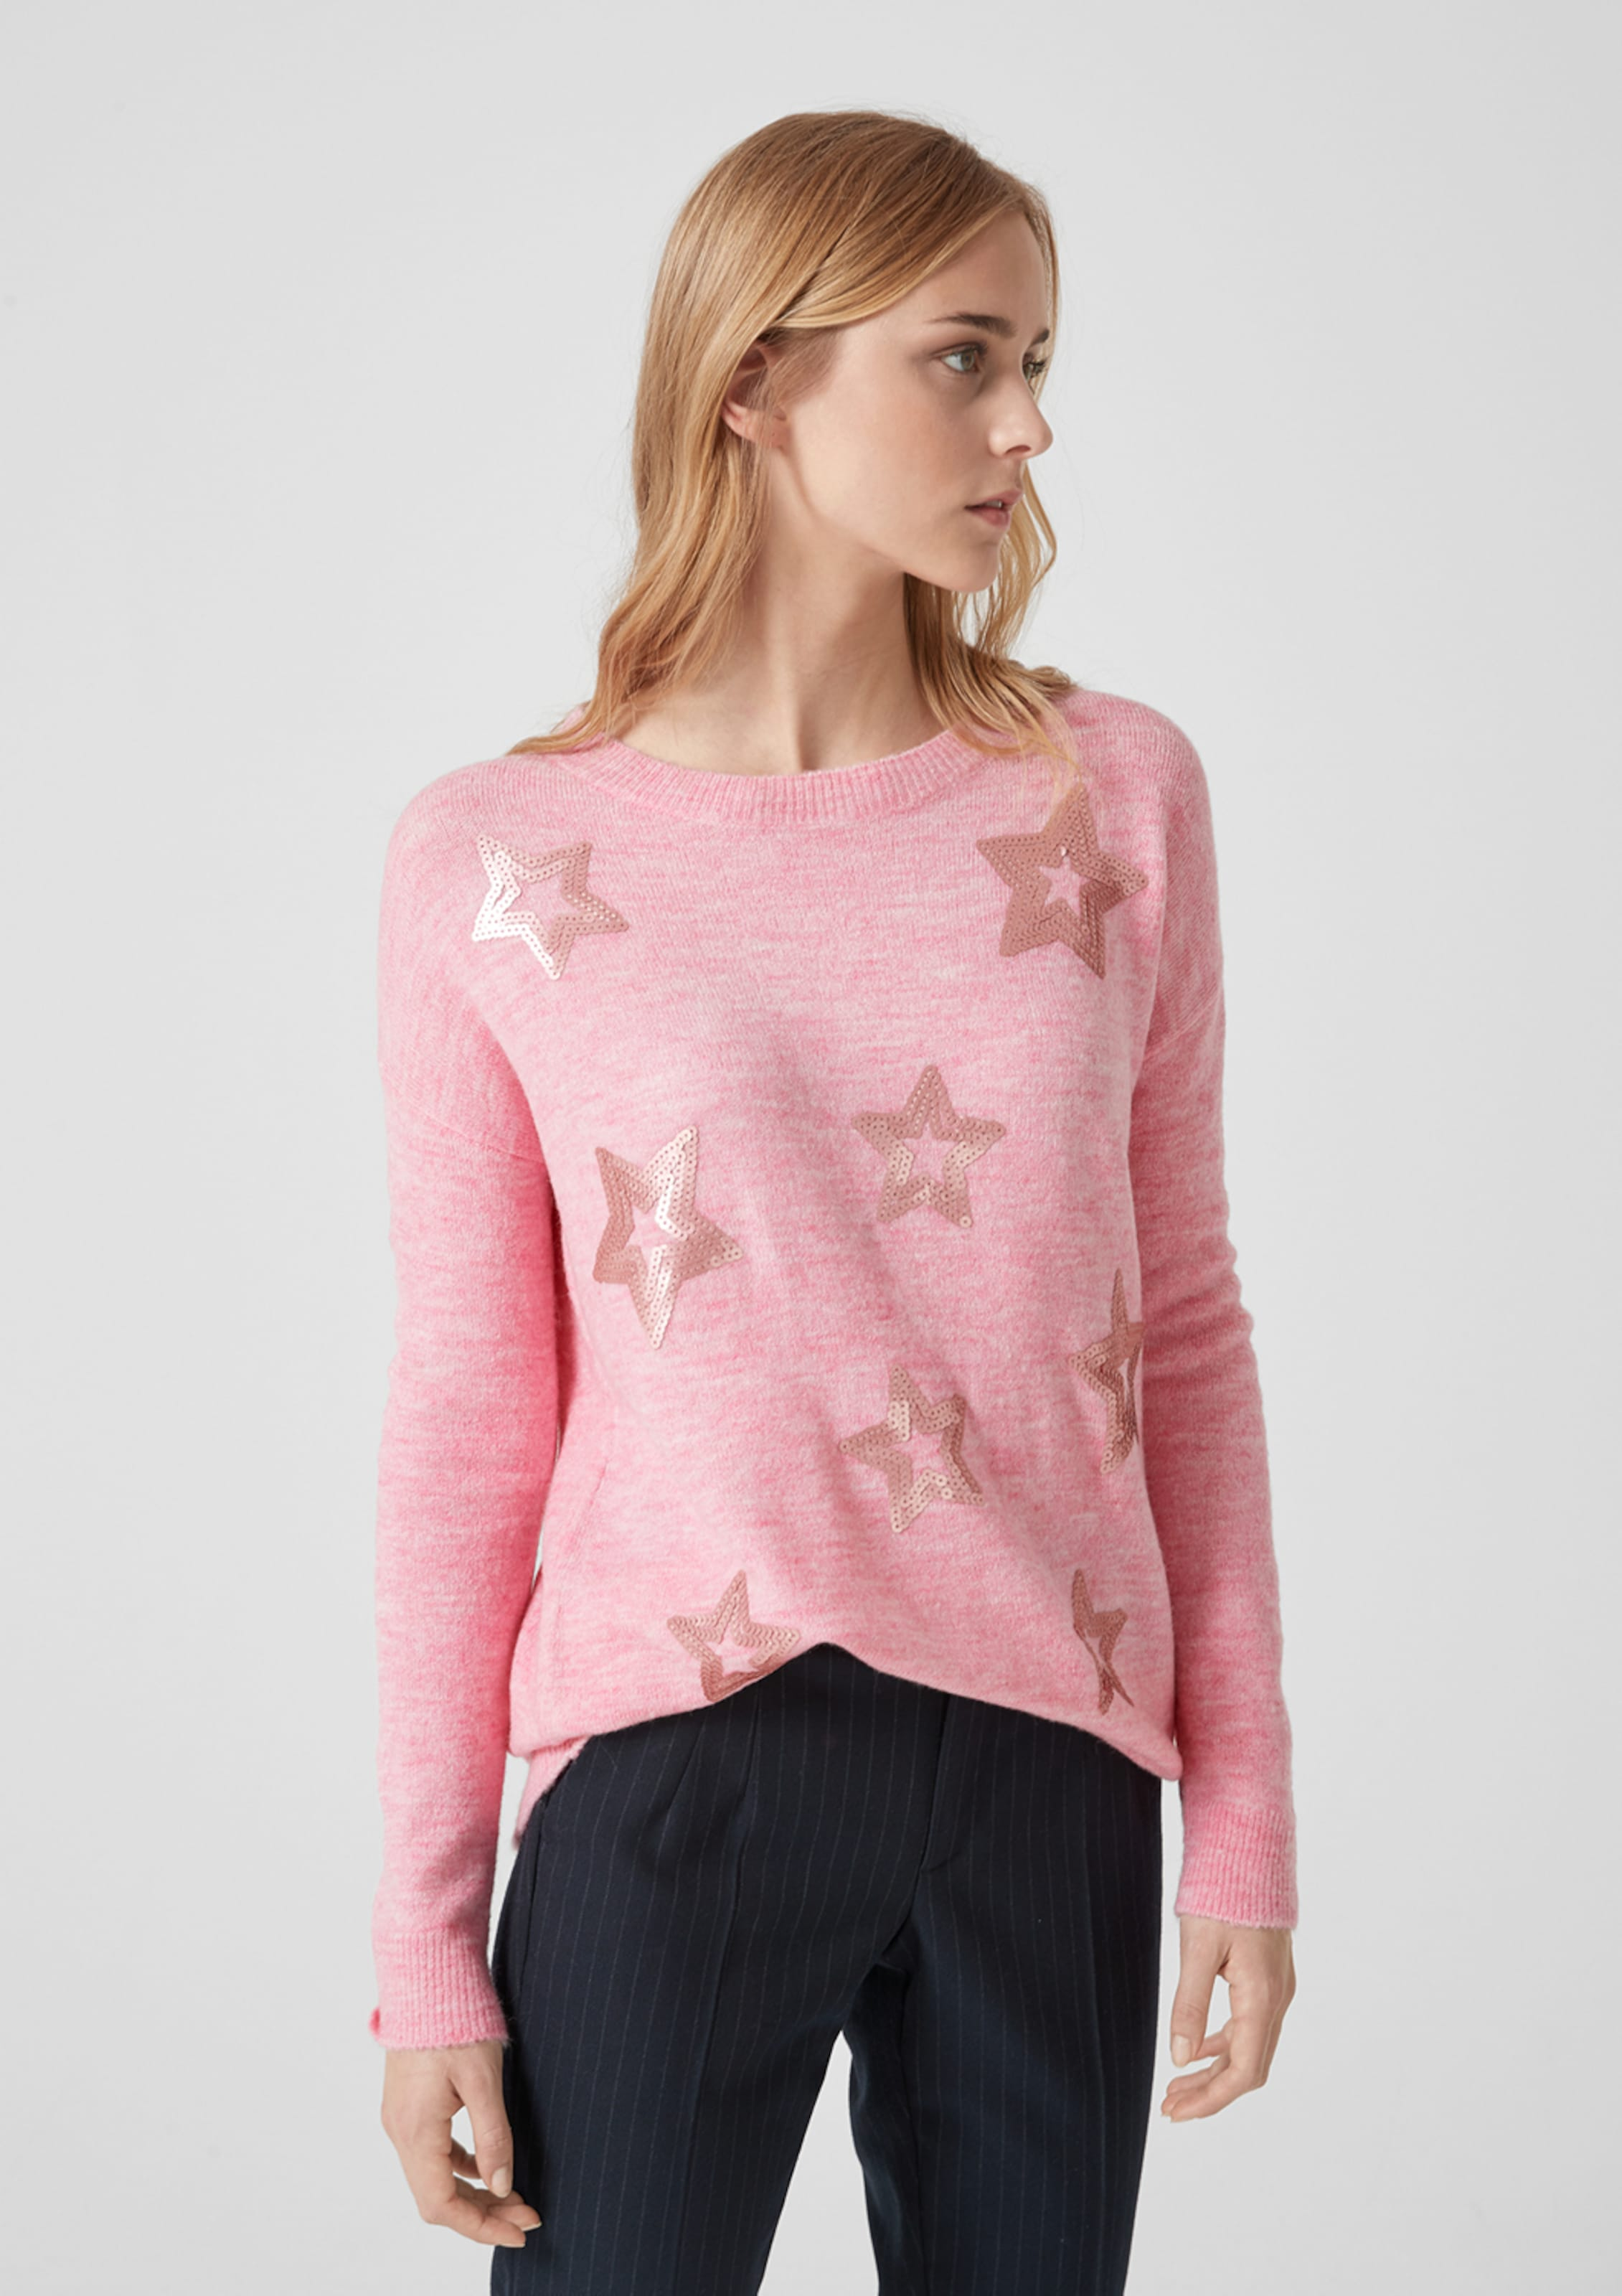 Pullover Pullover S Pink S oliver In In S oliver Pullover In oliver Pink HWI2E9D